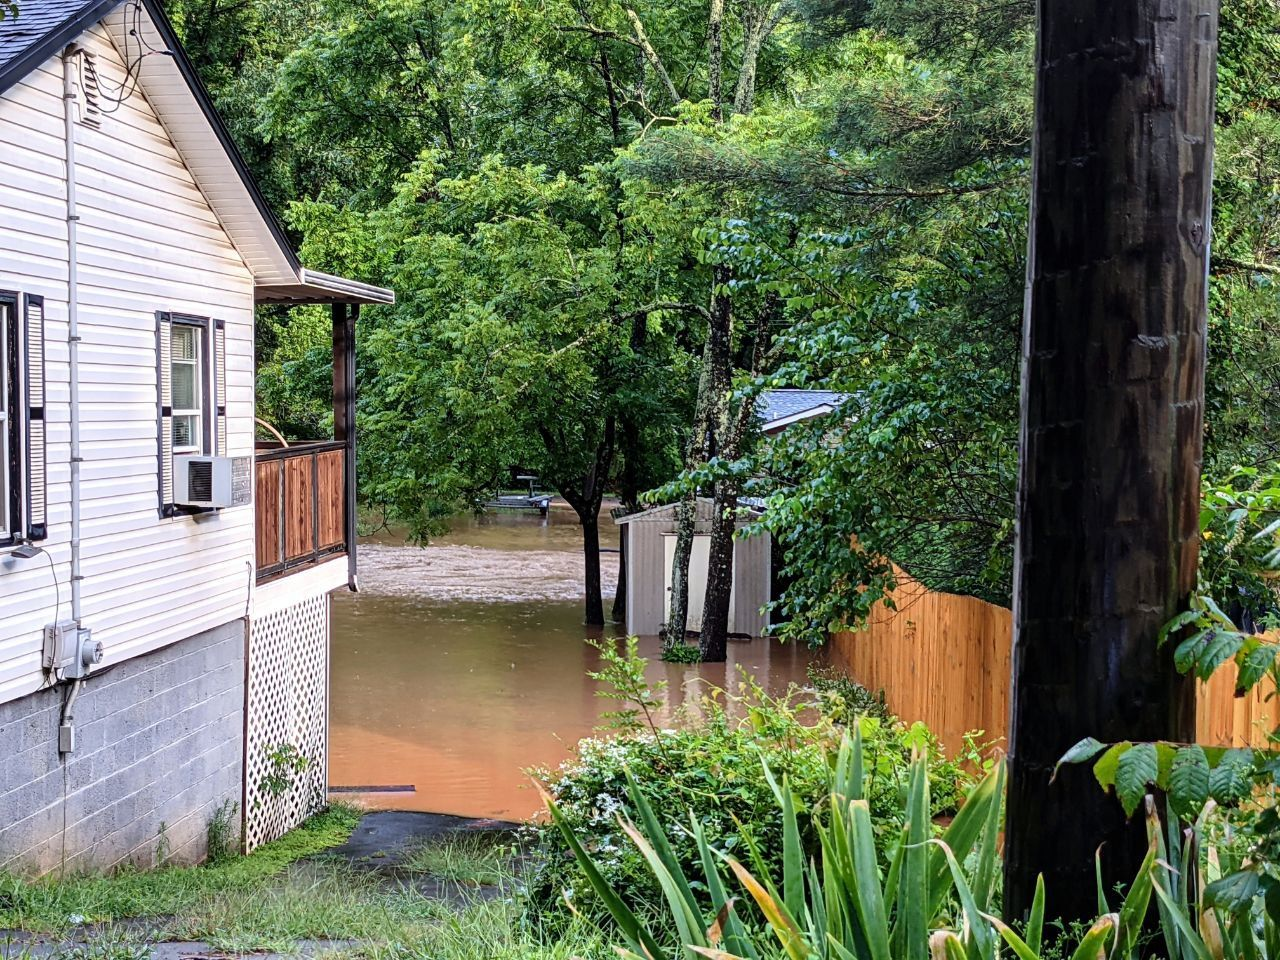 White house on left side of frame, the house's backyard is flooded.Sheds and other houses are submerged in the water.